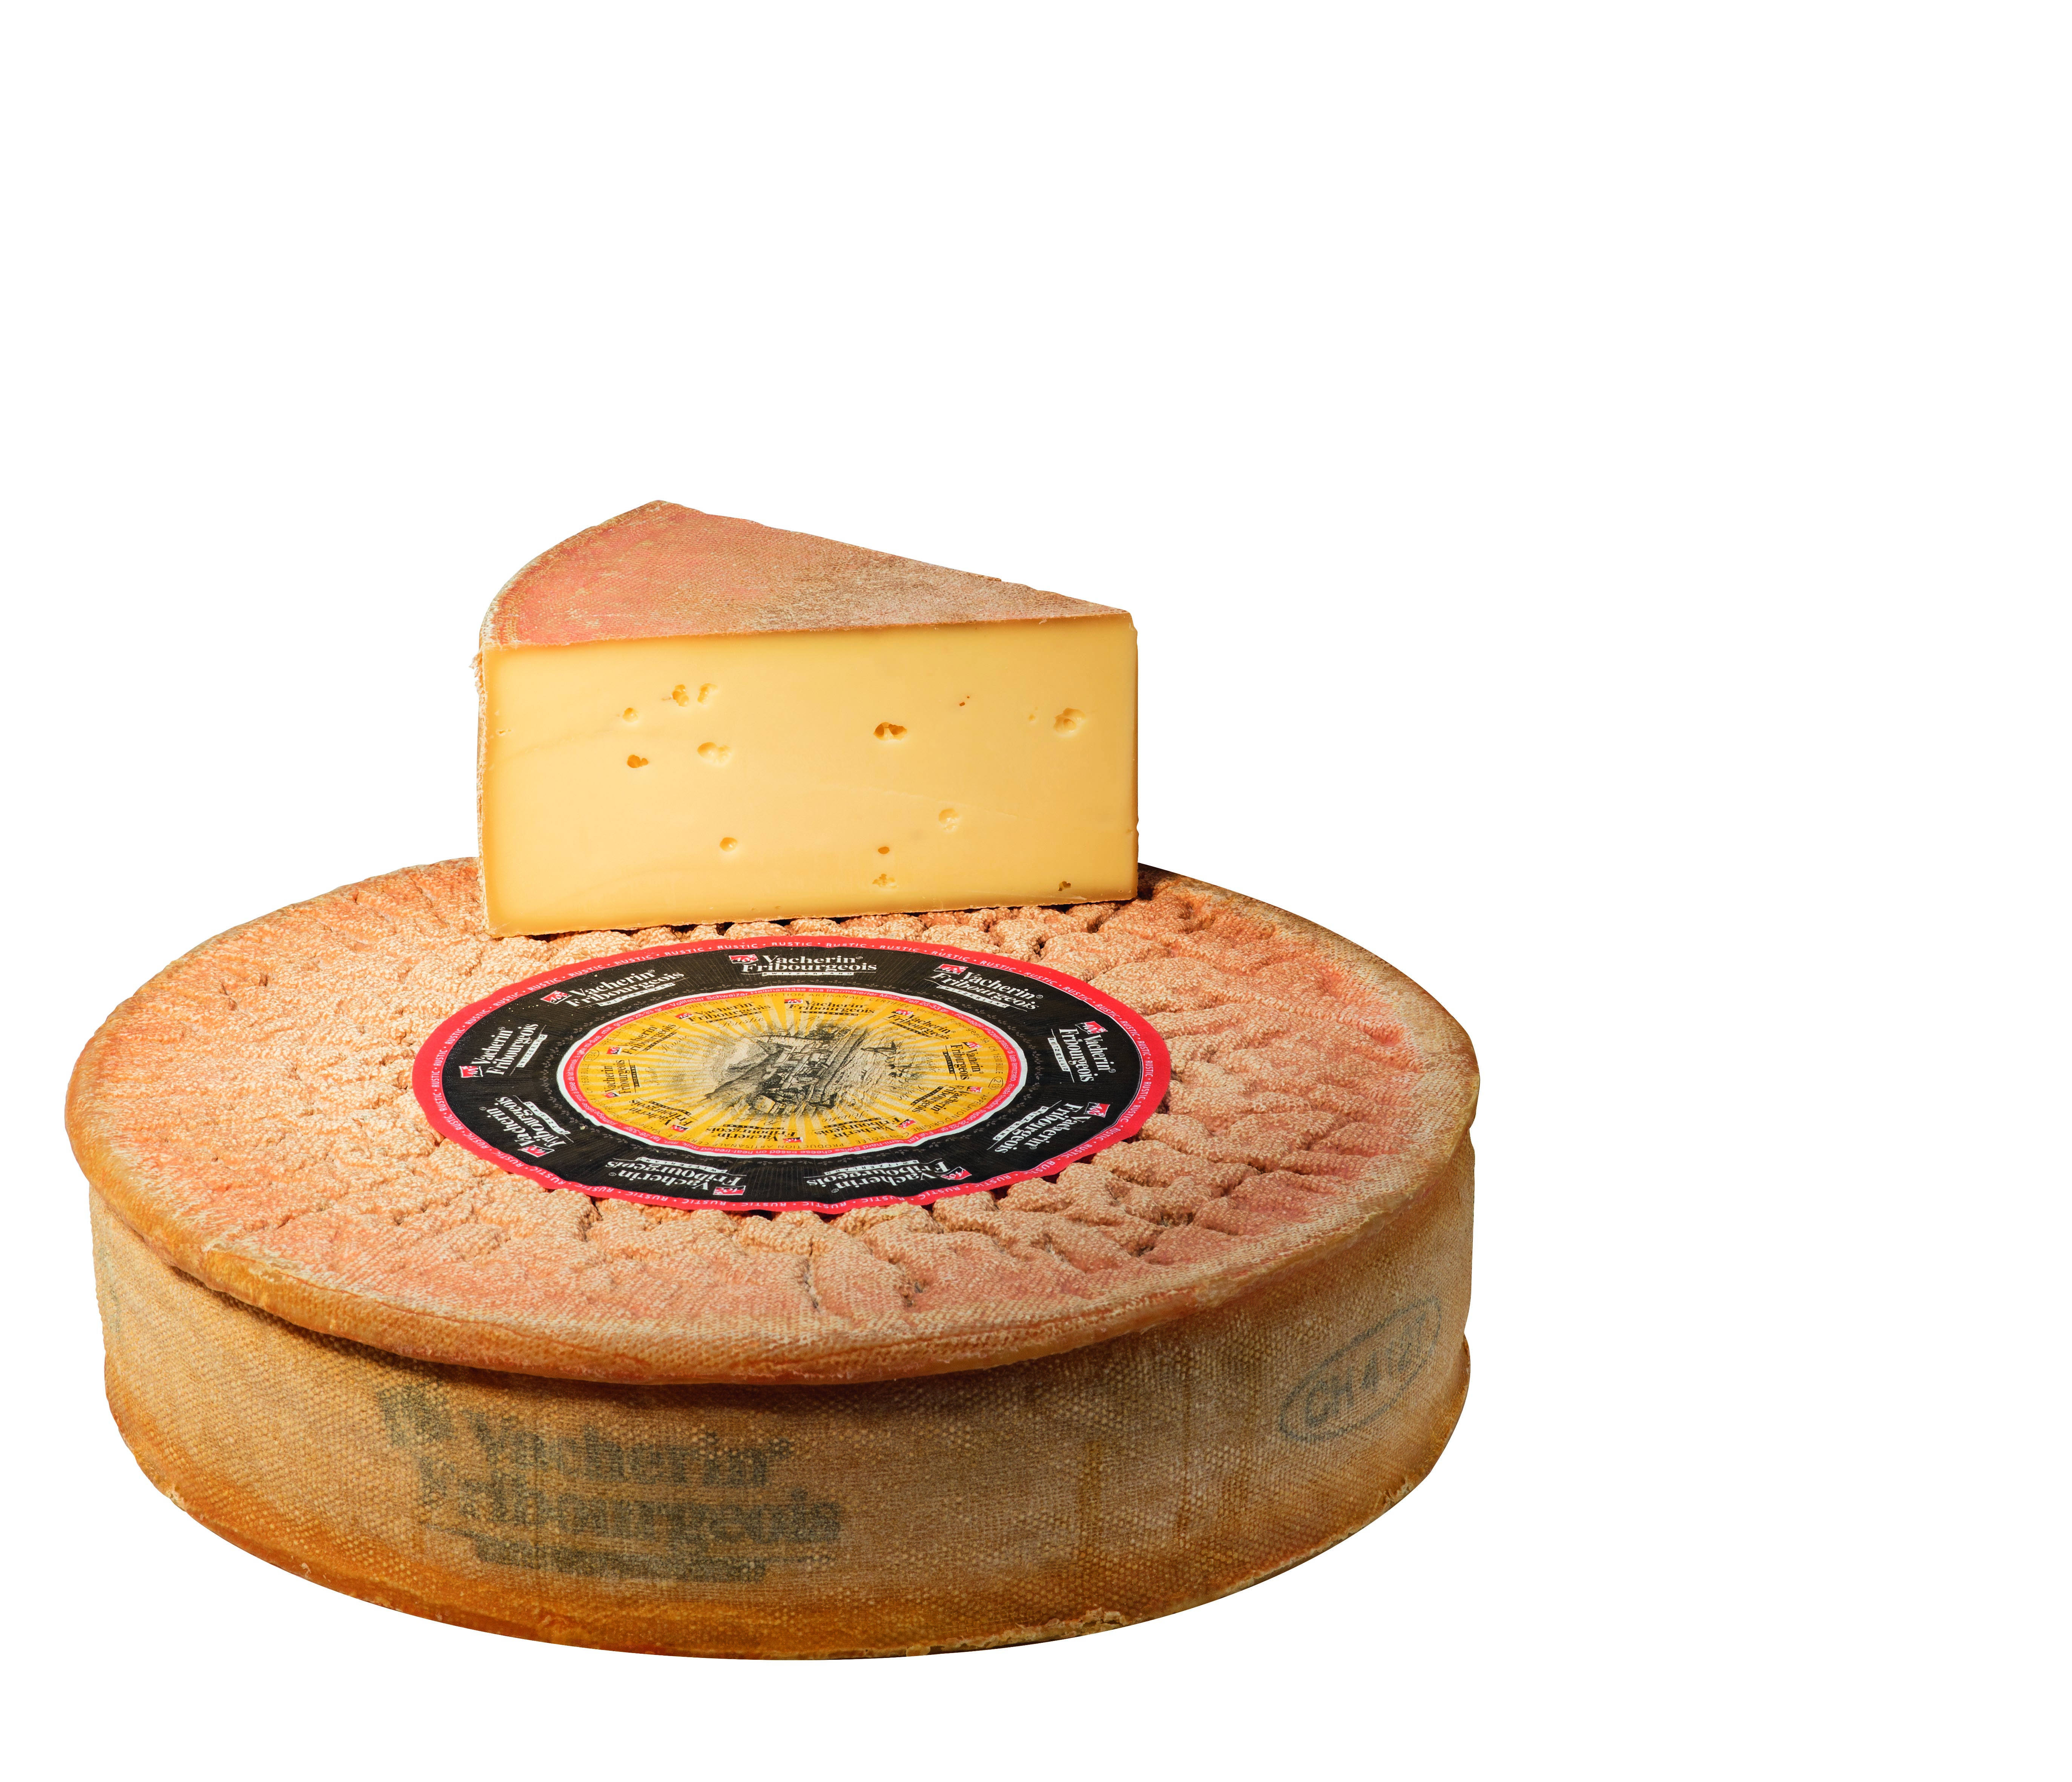 Fromages suisses - Vacherin fribourgeois AOP